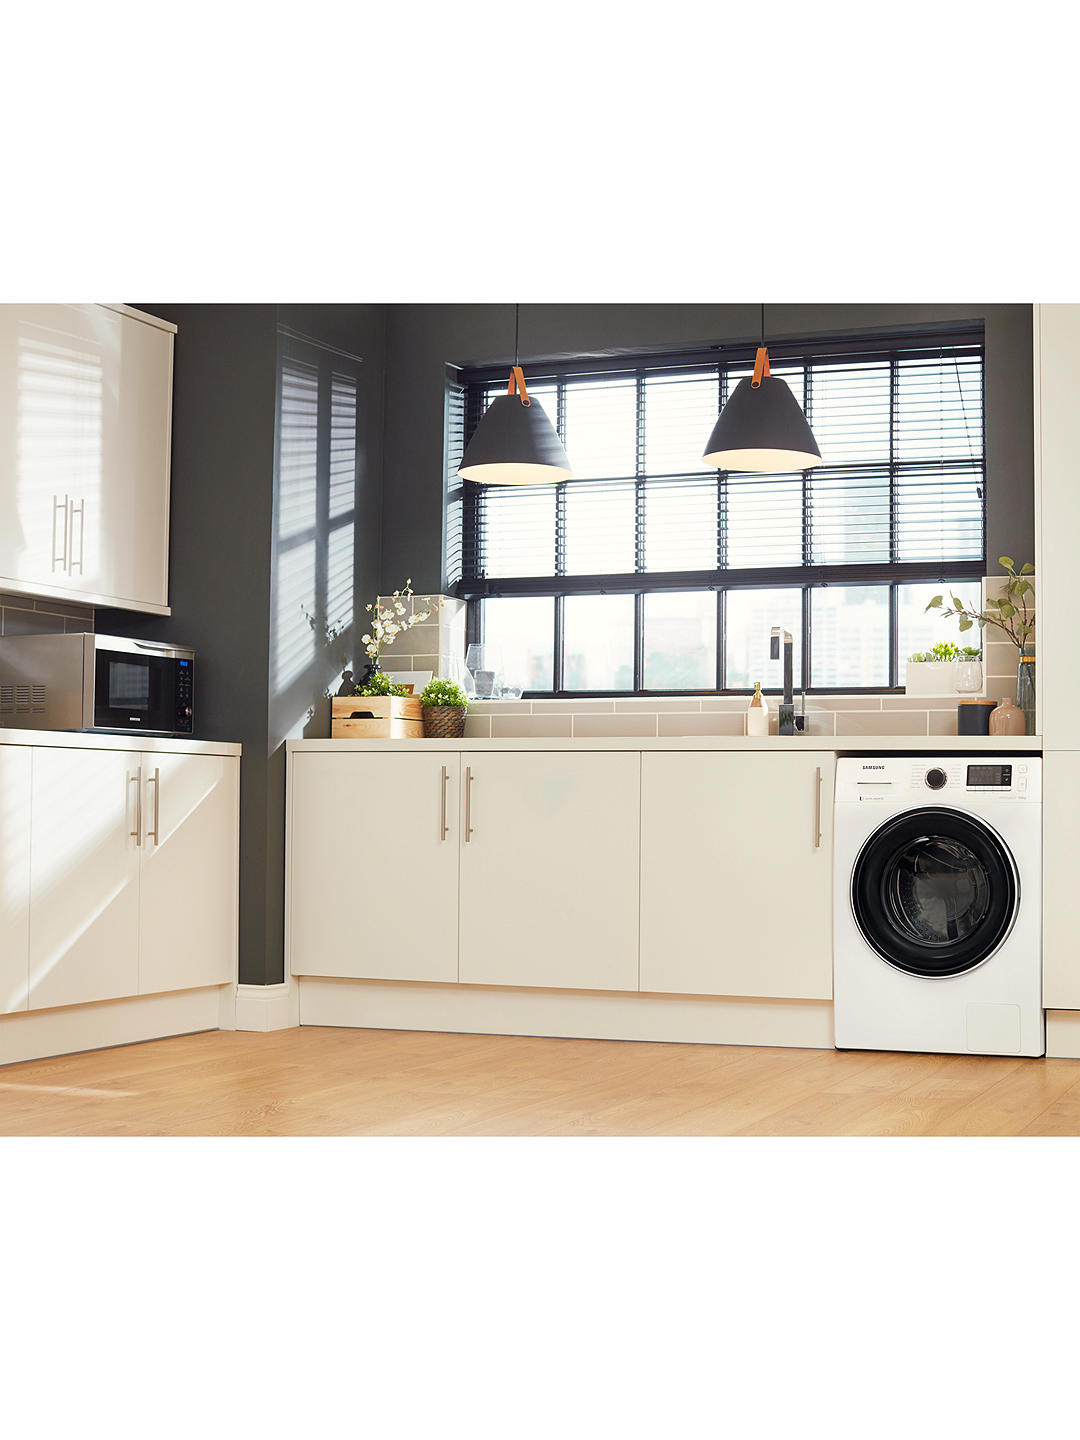 Buy Samsung WW90J5456FW ecobubble™ Freestanding Washing Machine, 9kg Load, A+++ Energy Rating, 1400rpm Spin, White Online at johnlewis.com